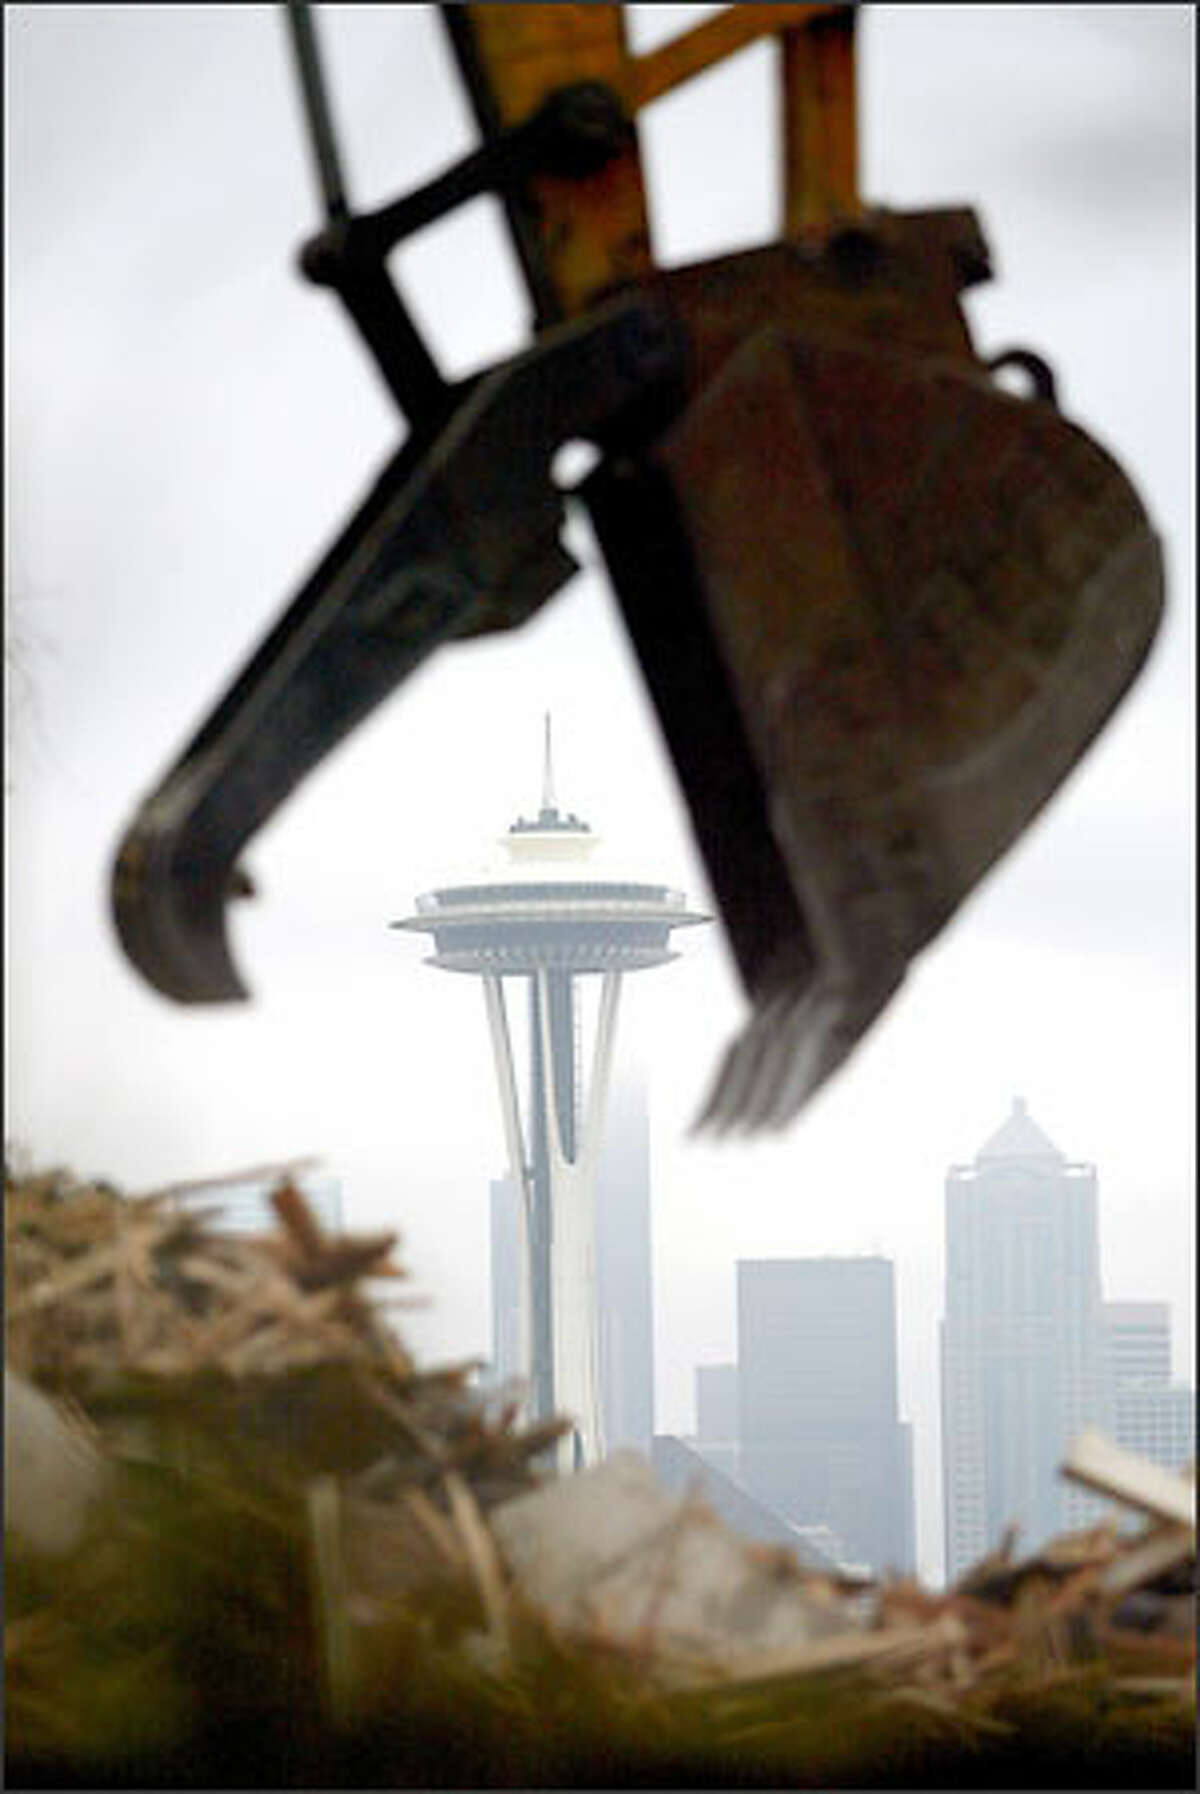 The jaws of a backhoe look as if they're about to devour the Space Needle as the operator works a pile of debris during demolition of a house on Queen Anne. The house at 222 W. Highland Drive sat across from Kerry Park Viewpoint and was built in 1914 for the J.C. Black family and designed by Andrew Willatsen, a protege of architect Frank Lloyd Wright. The house was sold last year and a permit was issued to demolish the house and garage to make room for construction of a single-family residence.